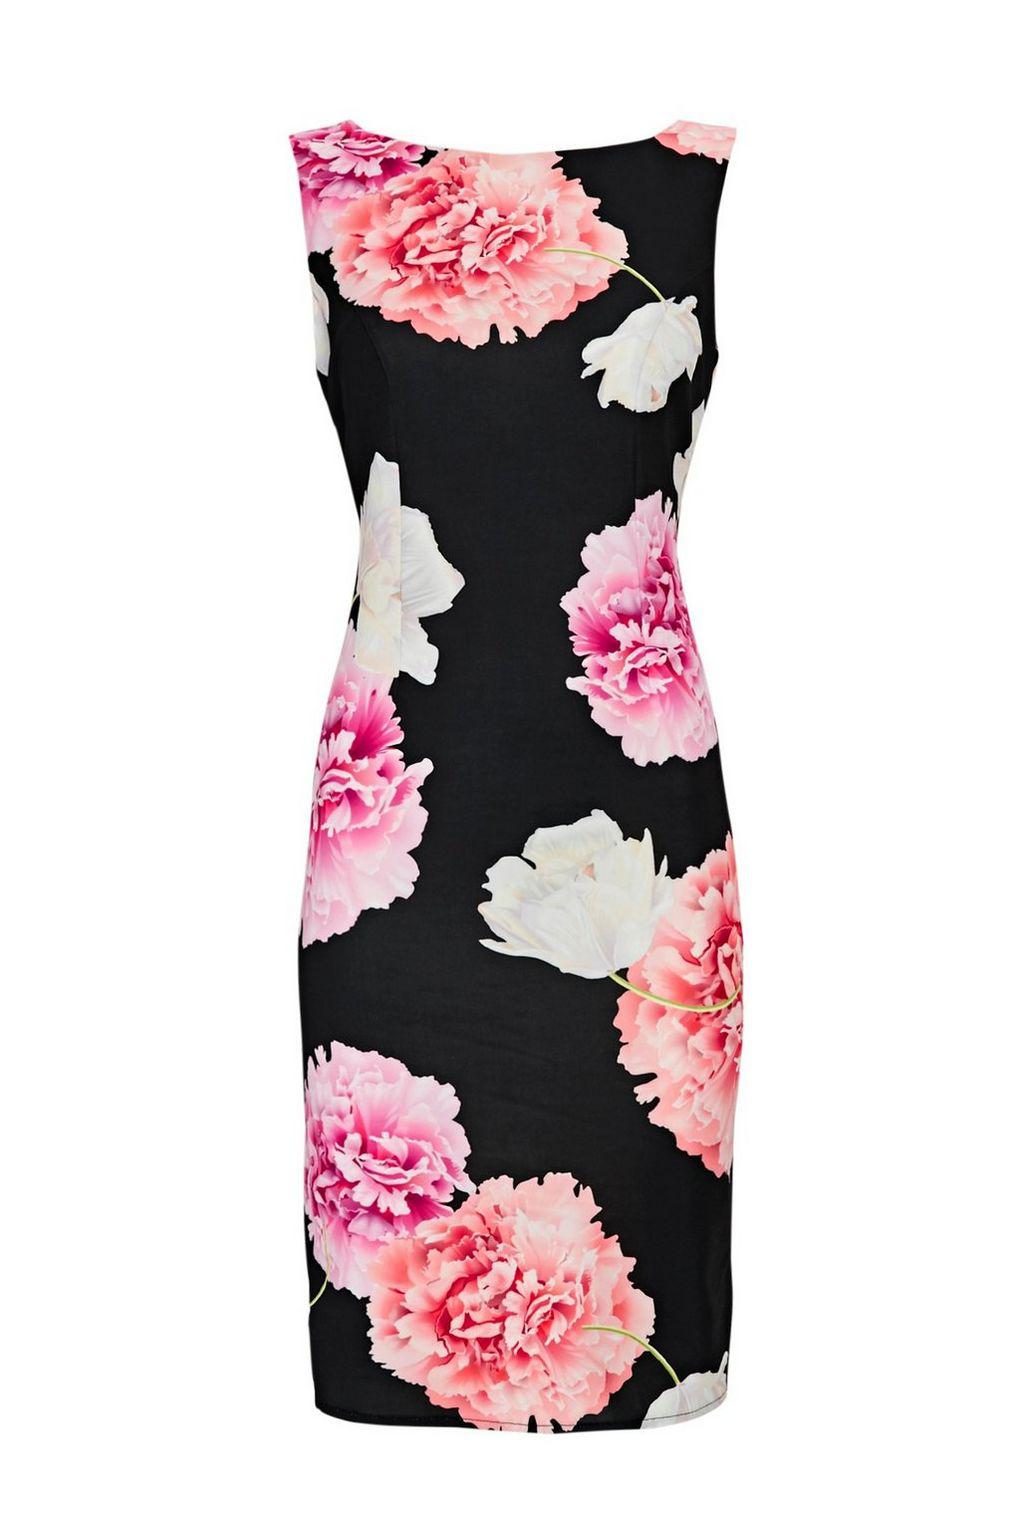 092583439c9e84 Wallis Petite Black Floral Print Shift Dress in Black - Lyst